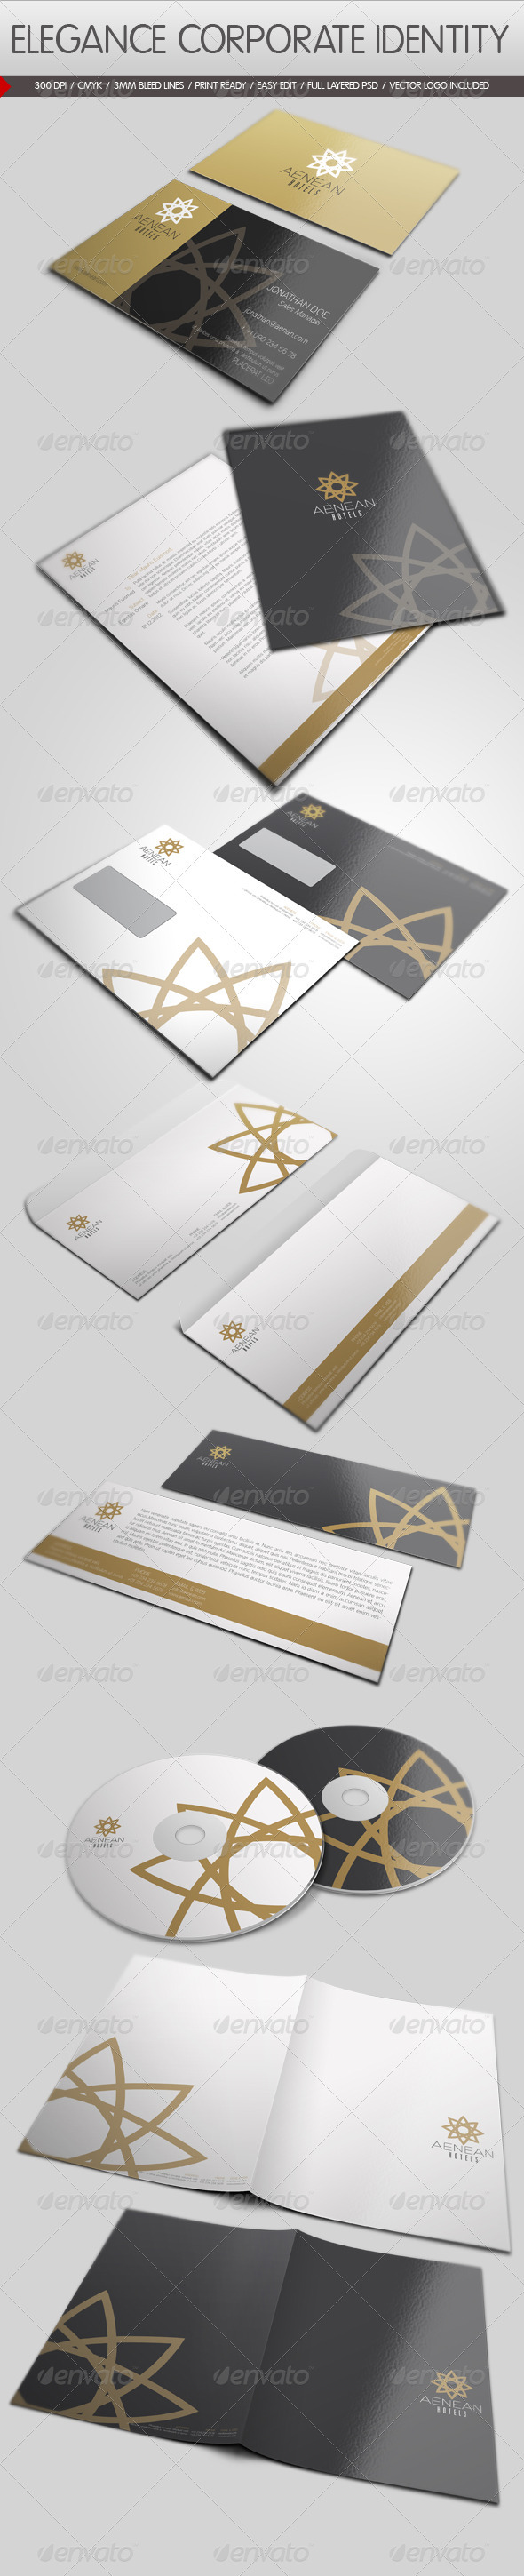 GraphicRiver Elegance Corporate Identity 1230556